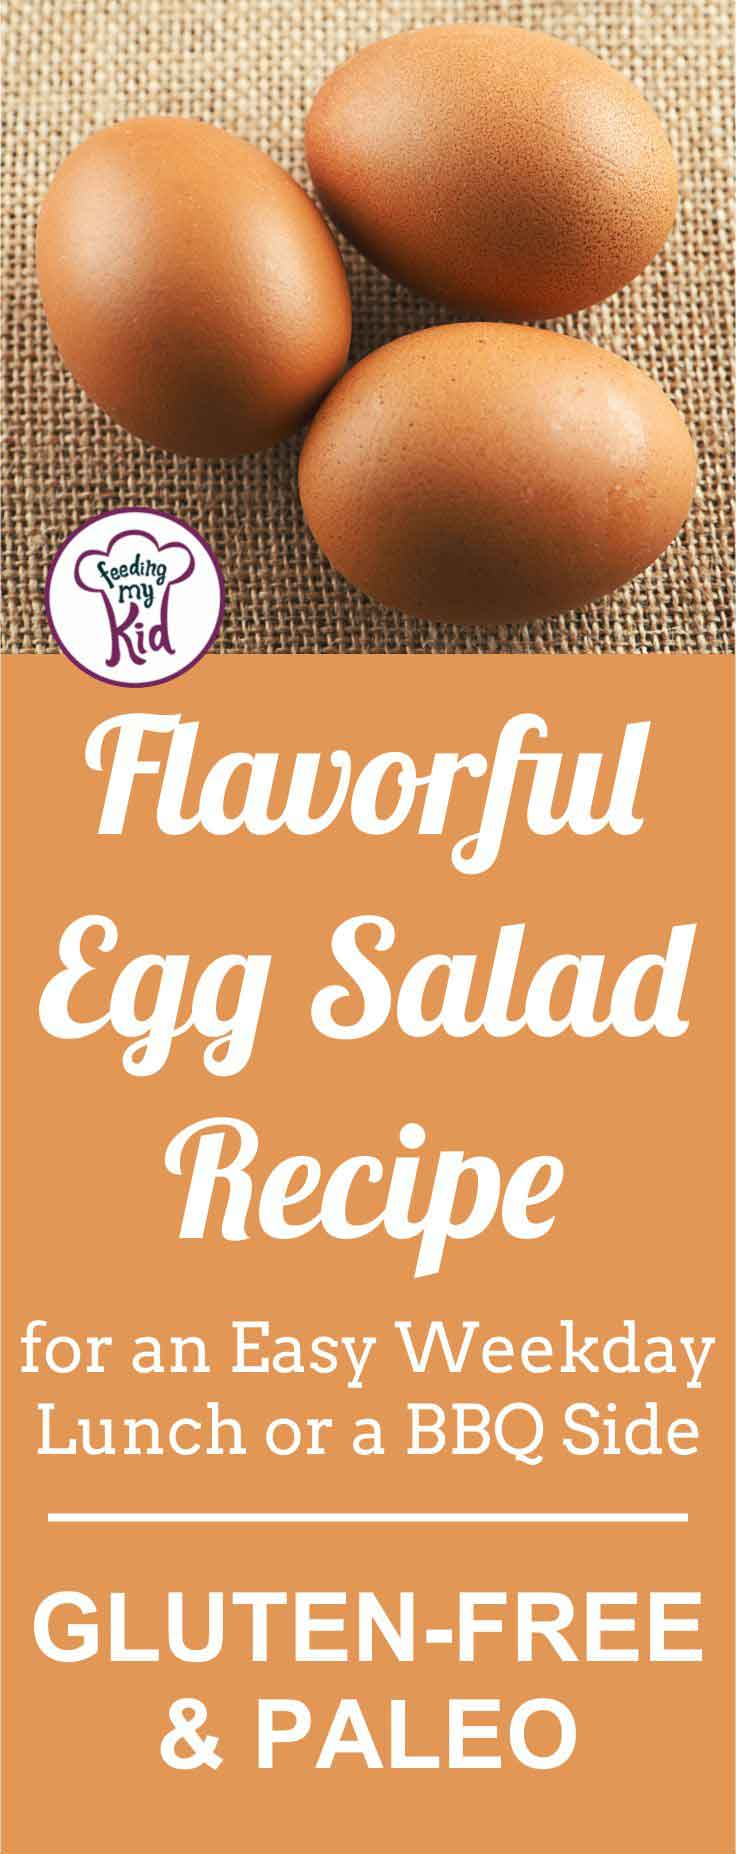 A super easy and flavorful egg salad recipe that goes with anything! Serve it as a side to your BBQ or as a yummy sandwich for lunch.